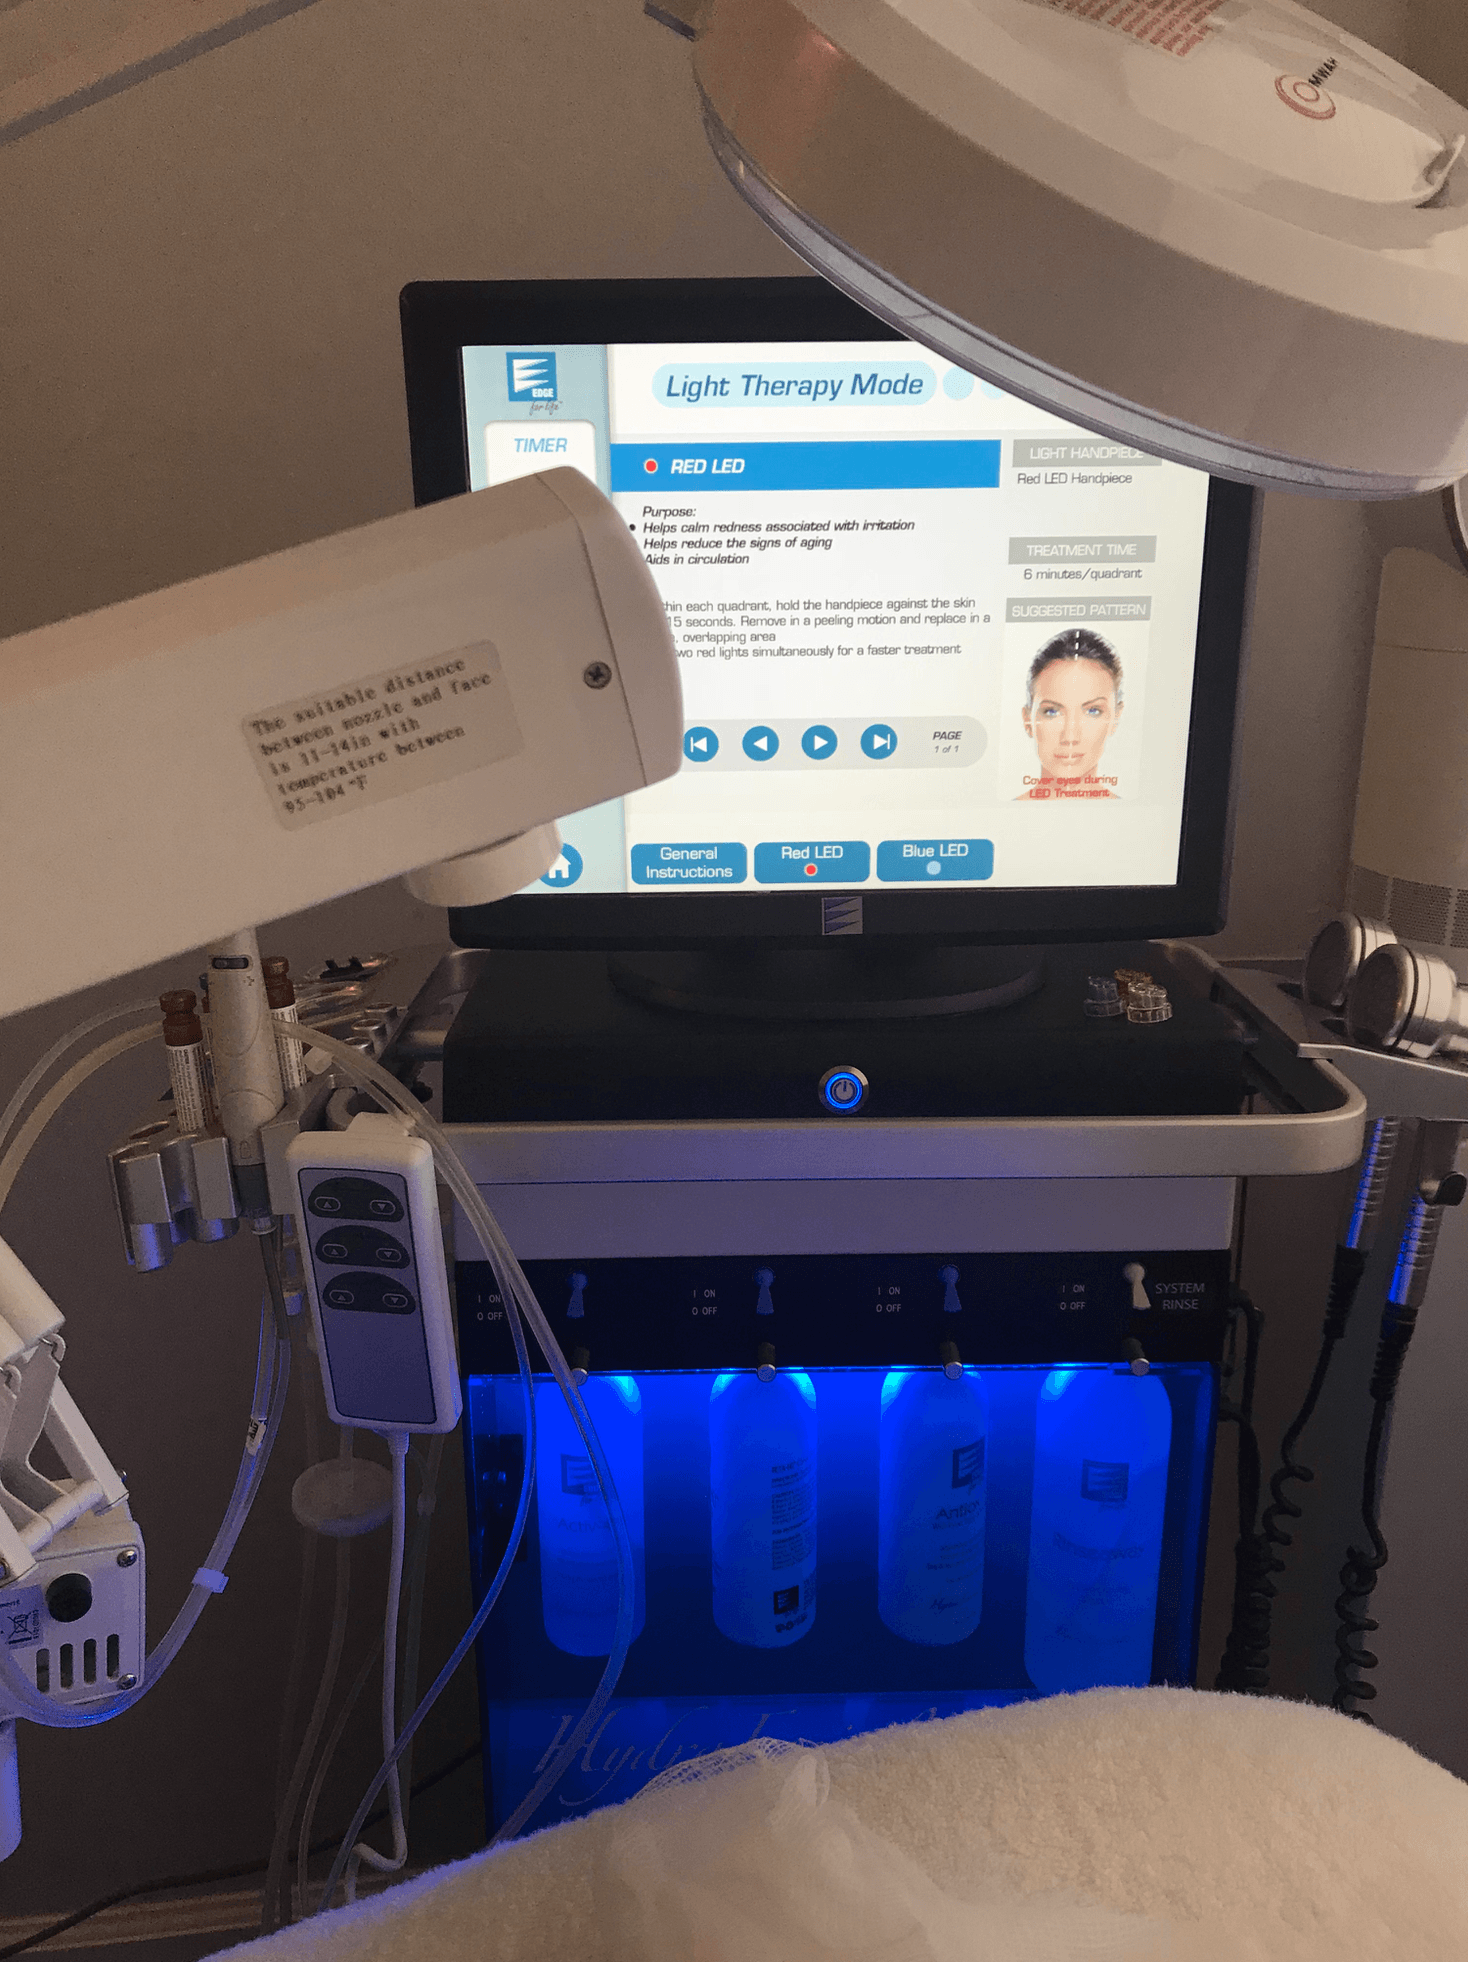 My Experience Getting A HydraFacial At Honolulu Spa + Wellness - Best Facial Honolulu - Honolulu Facial - Honolulu Spa - HydraFacial Near Me Honolulu - HydraFacial Before and After - HydraFacial Results - Spa Honolulu - Honolulu Spa and Wellness